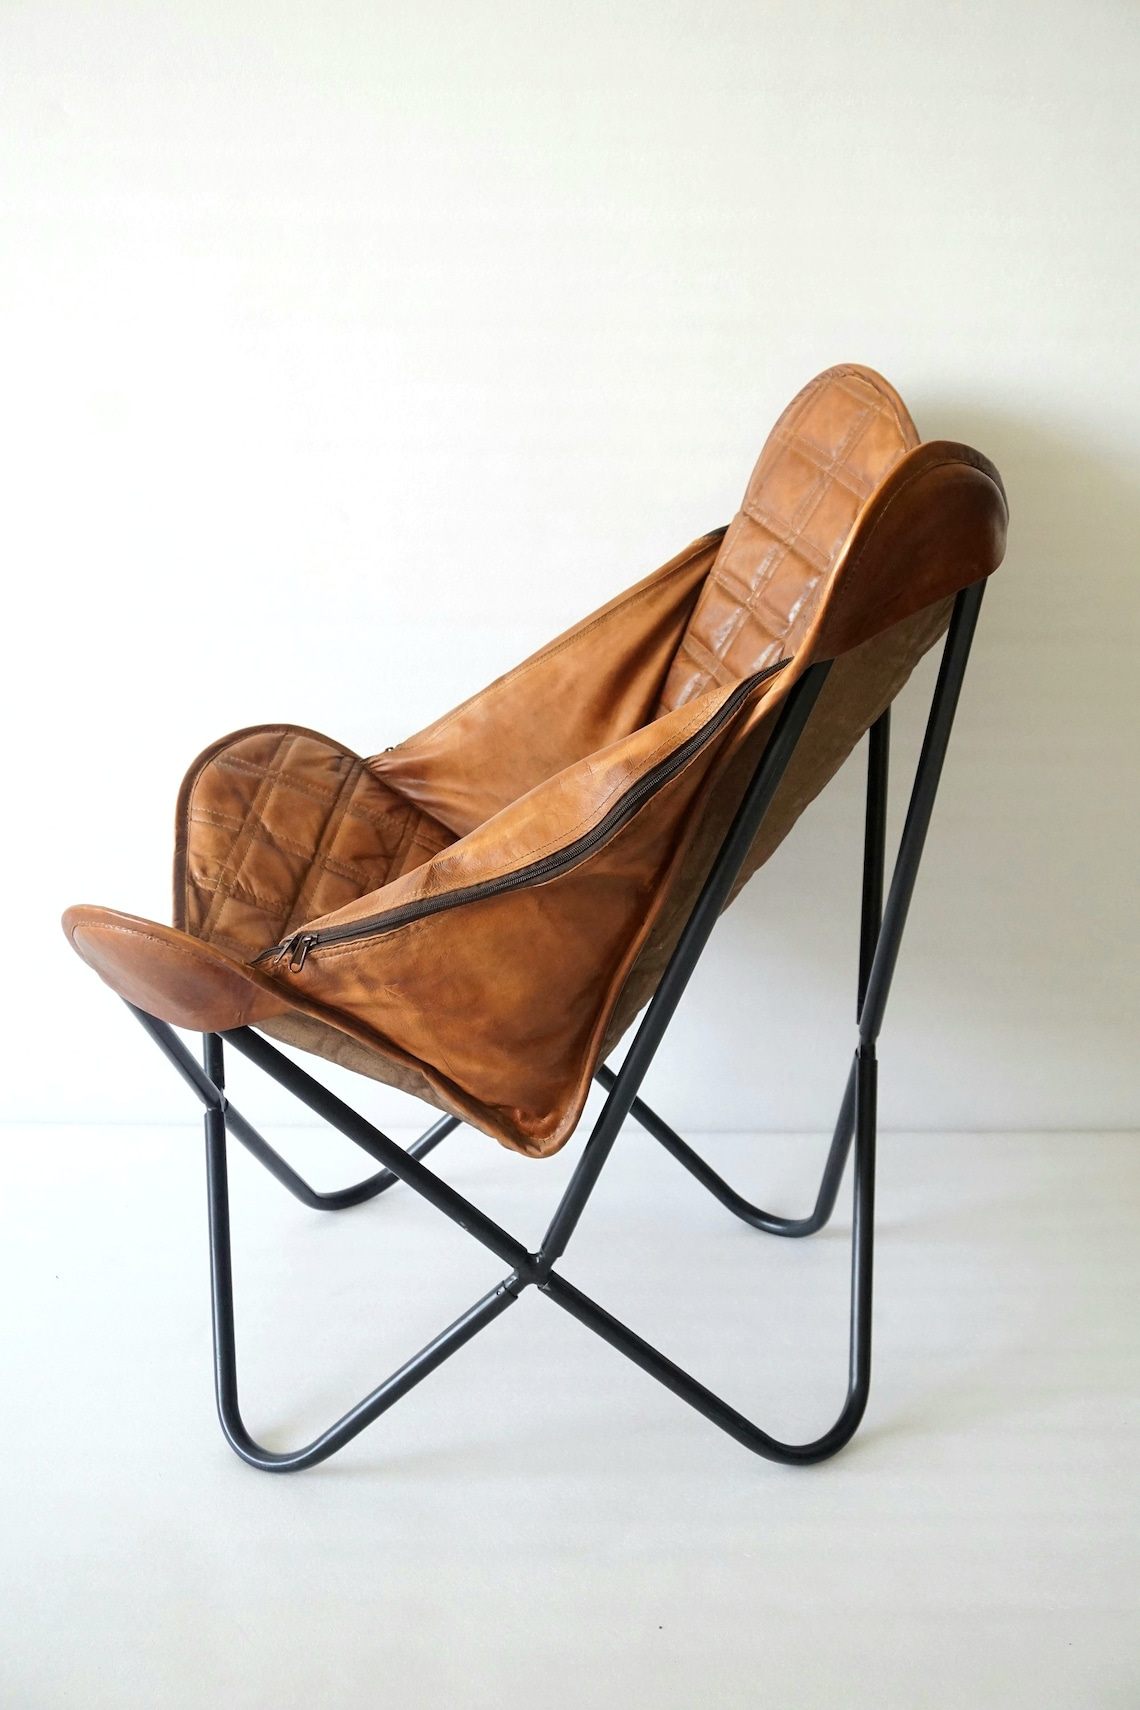 Replacement Cover for Butterfly Chair, Handmade Leather Cover, High Quality